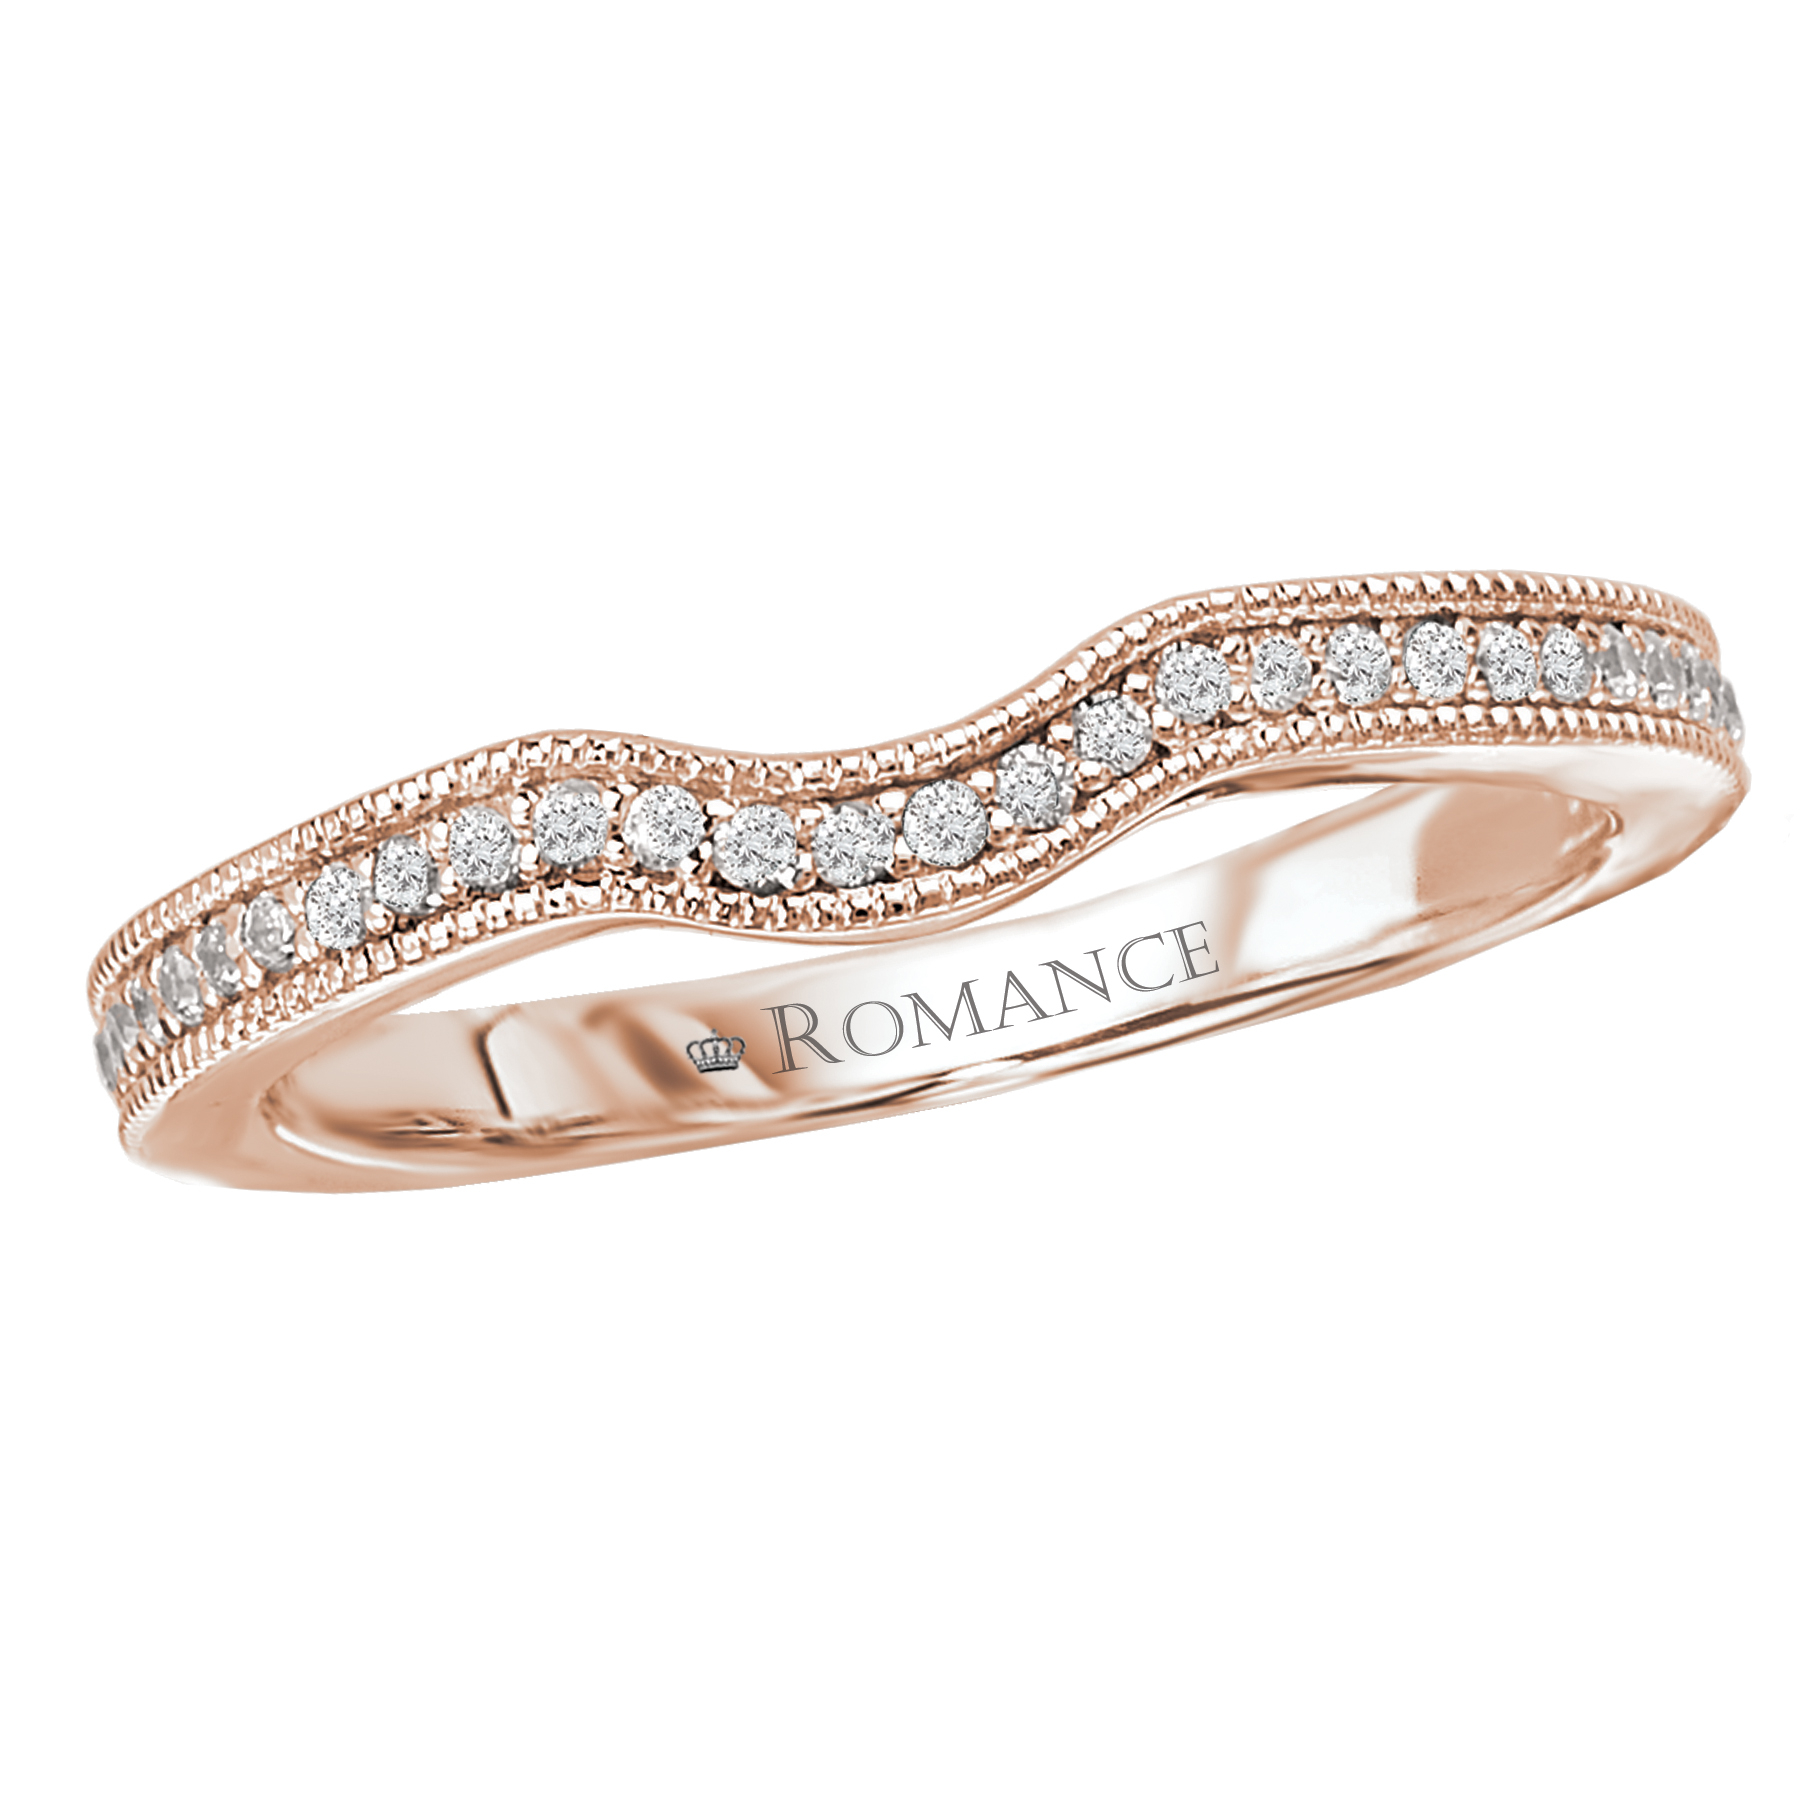 Romance Wedding Bands 117221-WR product image